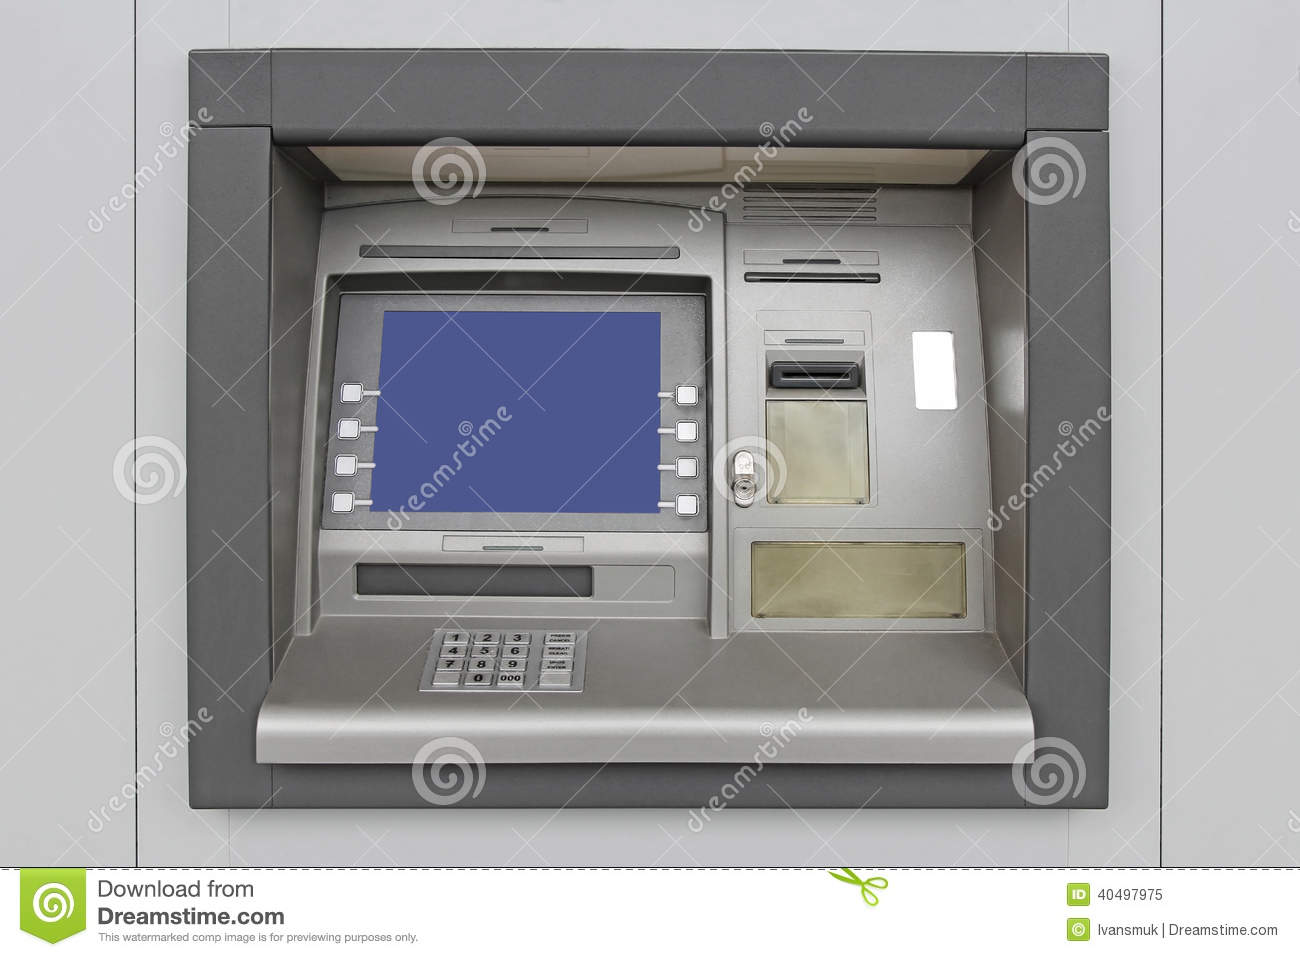 thesis about automated teller machine Research paper on secure atm by image processing check essay for errors free sample thesis acknowledgement  security has an automated teller machine.